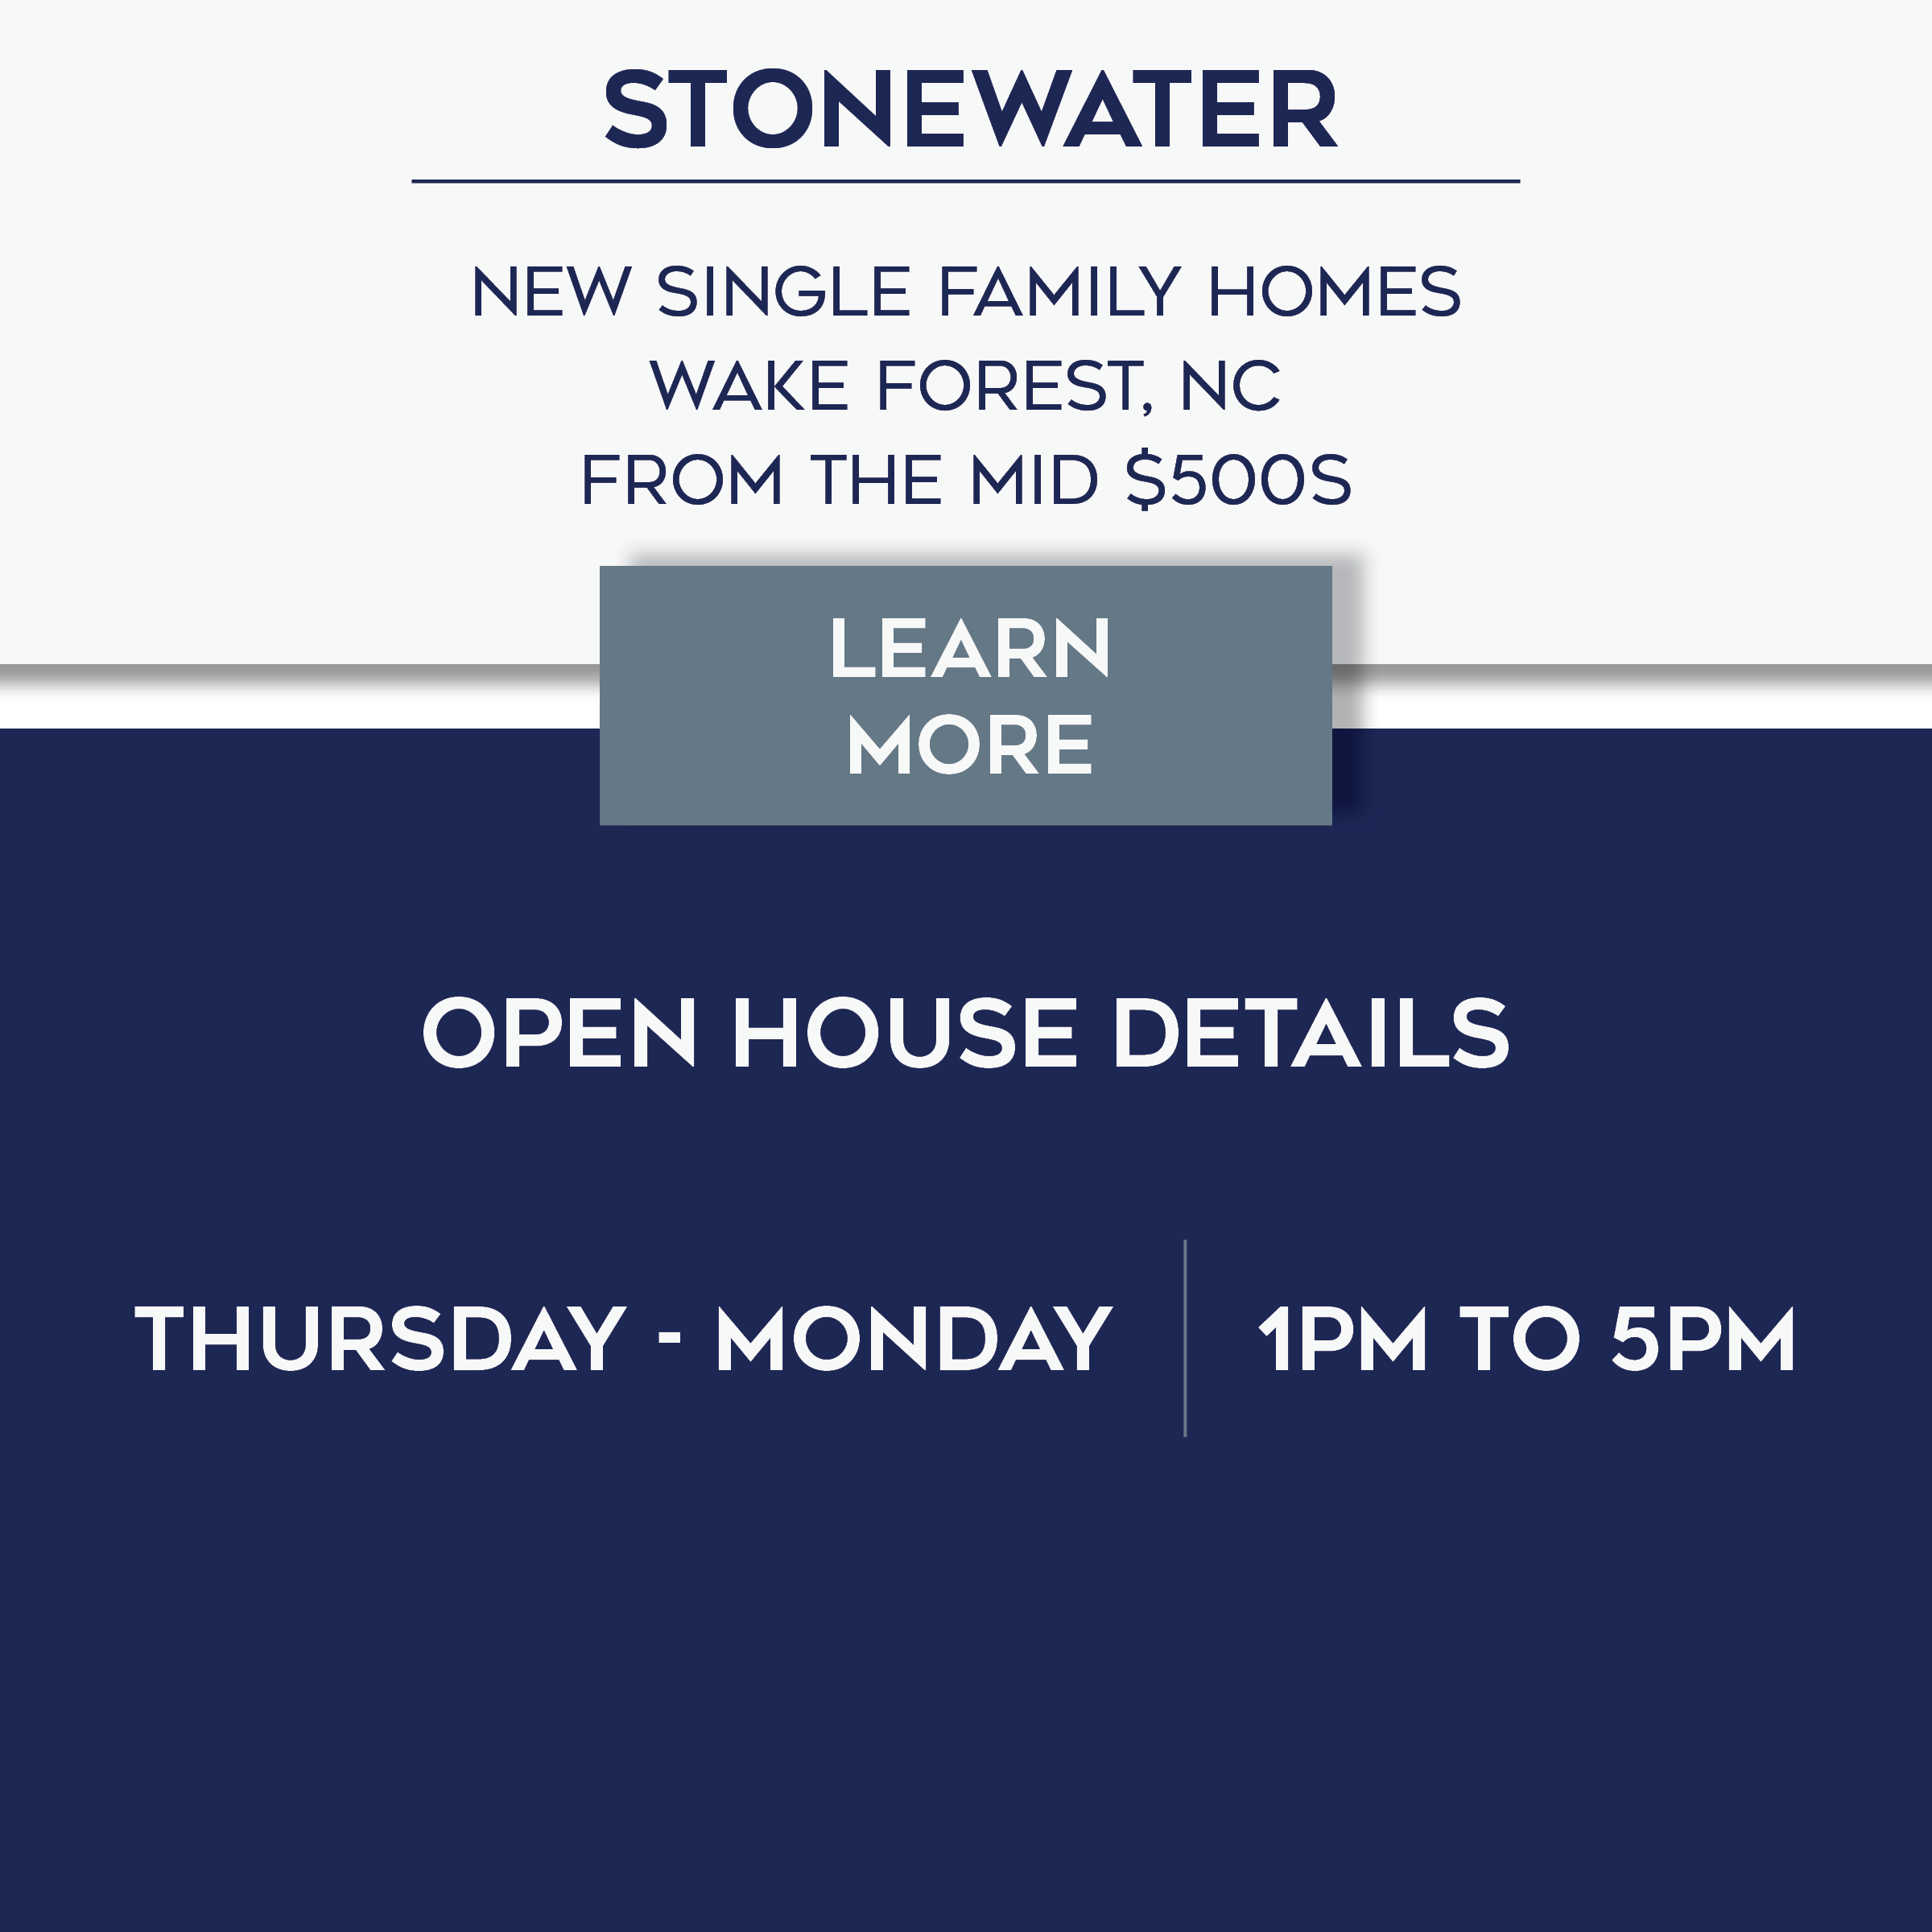 Stonewater Open House